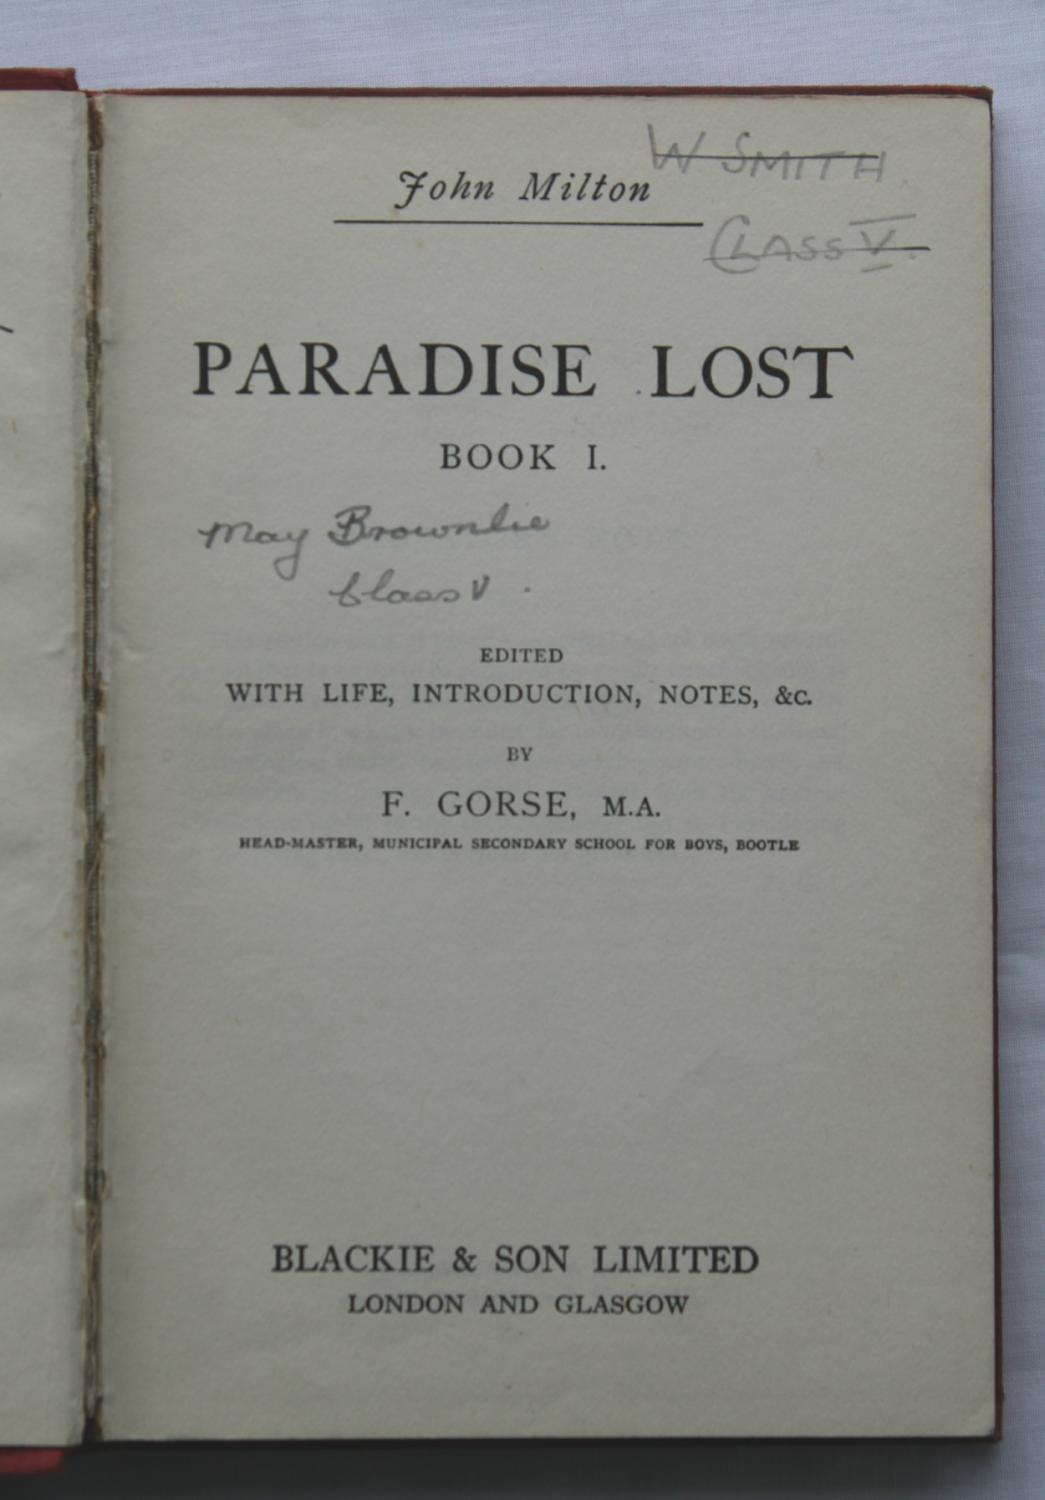 paradise lost and the life of john milton Keywords: john milton, paradise lost, early modern cartography, bible  social,  and political life among the english elite — facilitating not just.